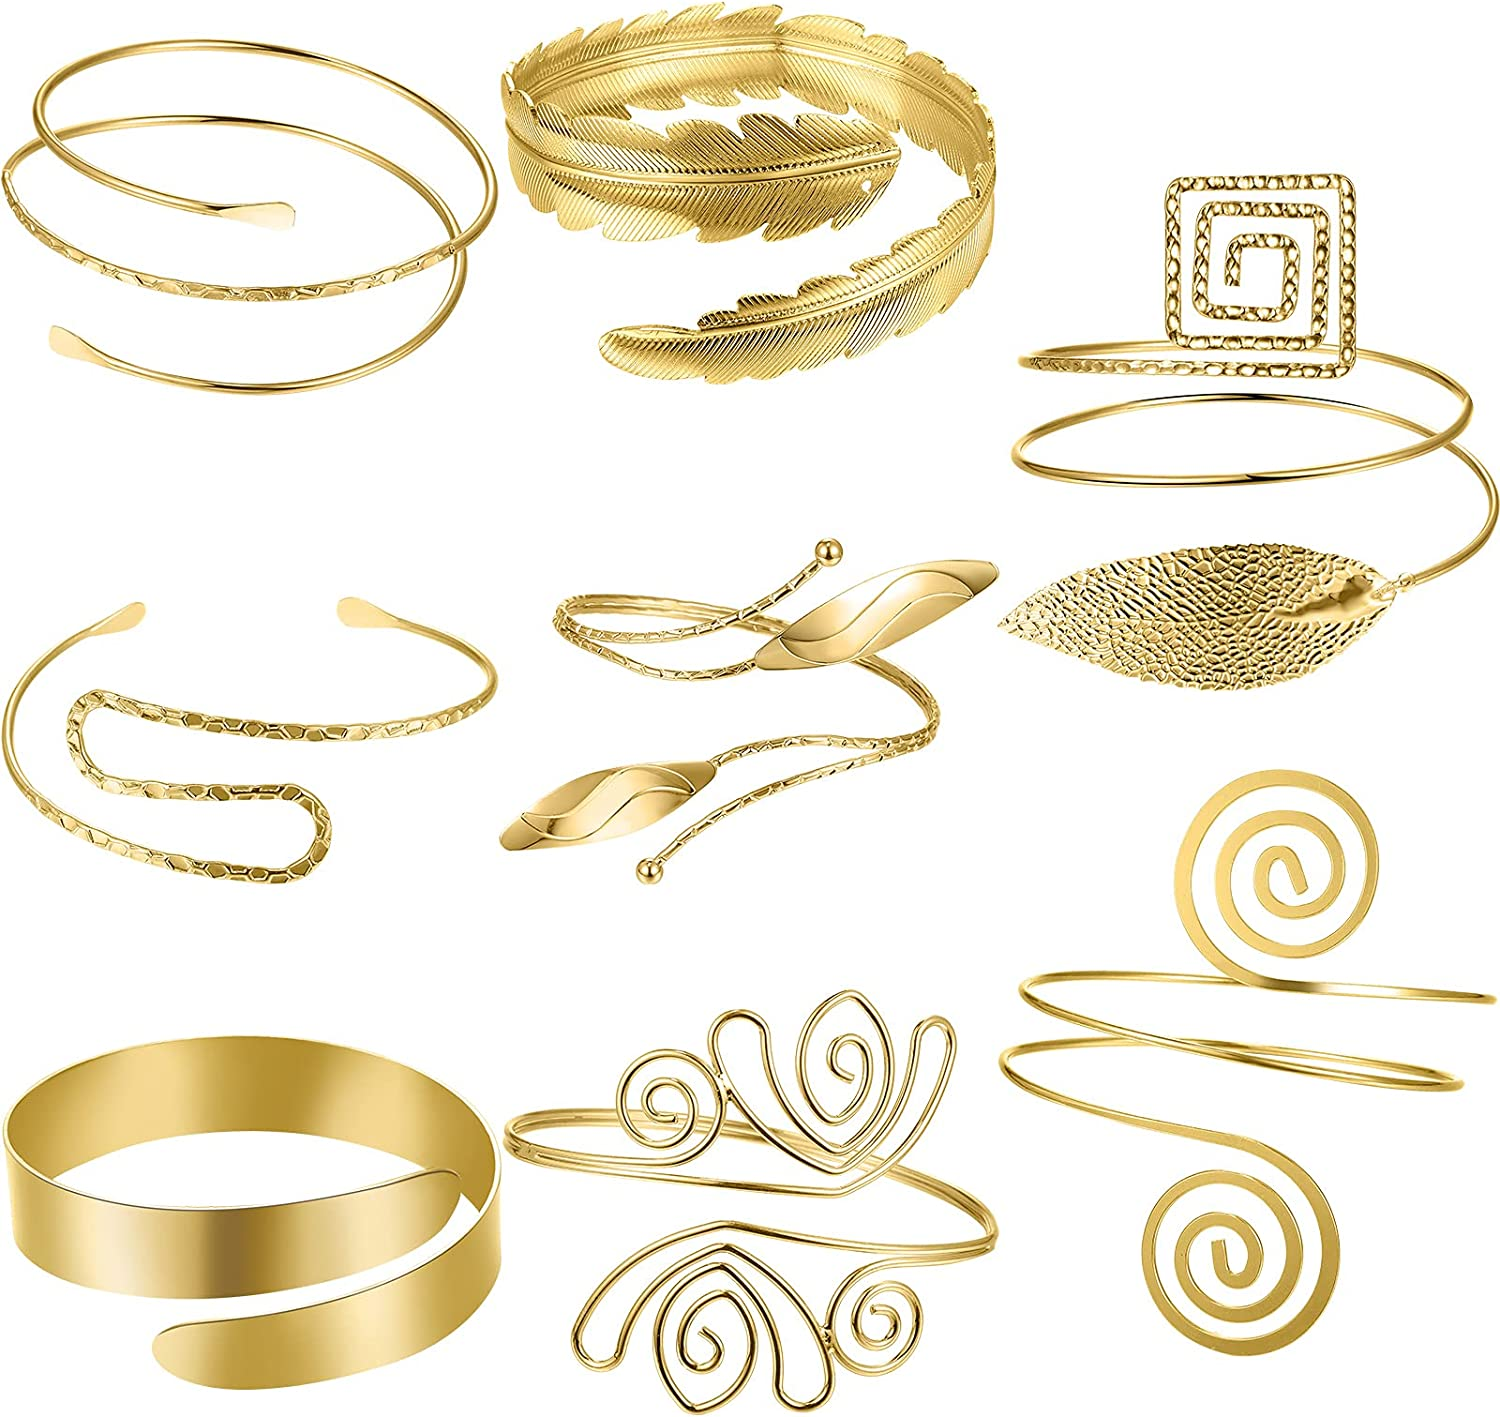 8 Pieces Arm Cuff Upper Arm Band Cuff Arm Bracelet for Women Girls Open Upper Arm Bangle Gold Adjustable Armband Jewelry Set